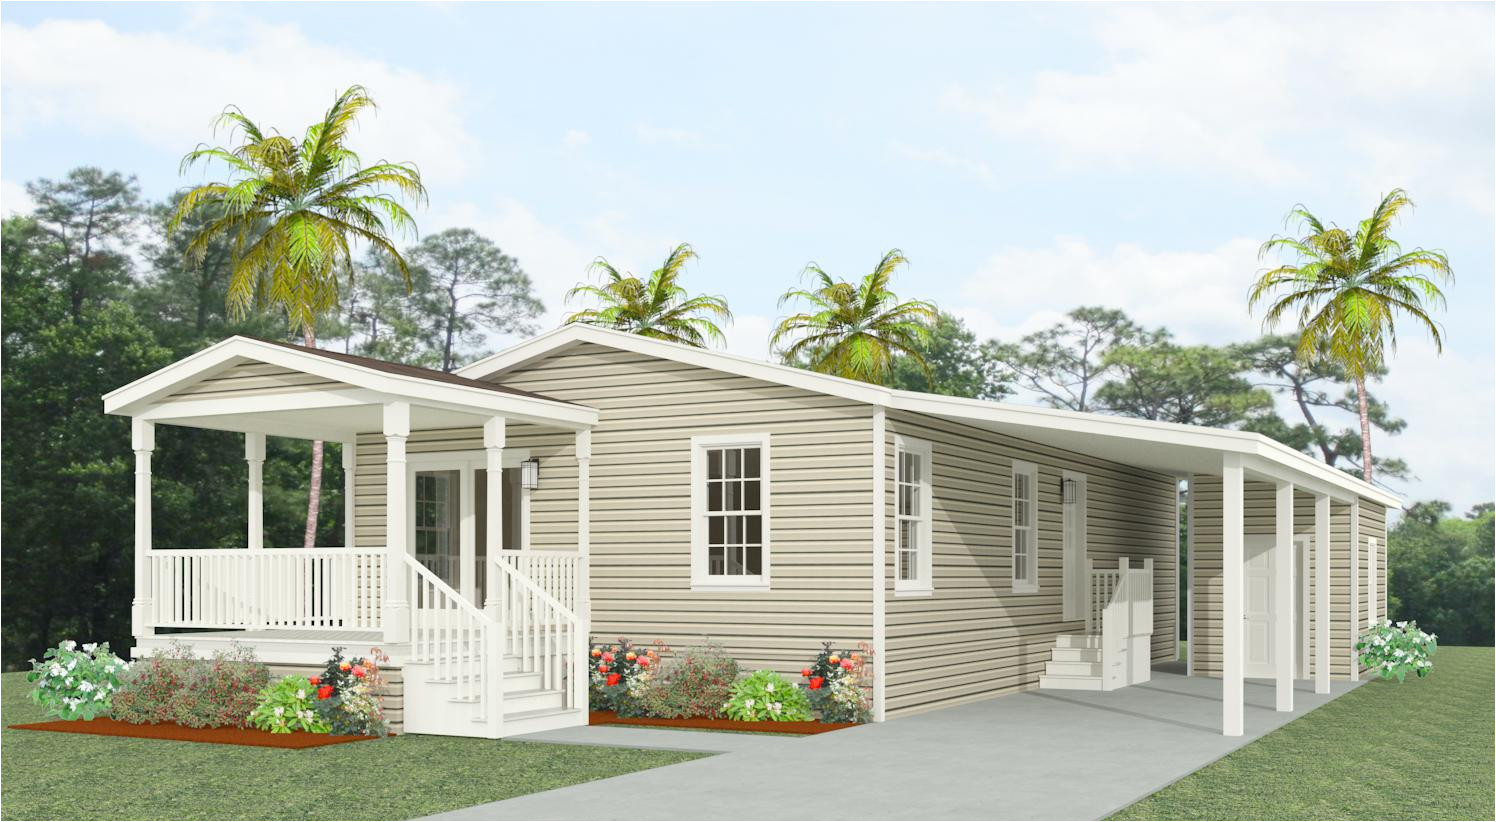 2 exterior rendering of jacobsen homes floor plan tnr 5501w